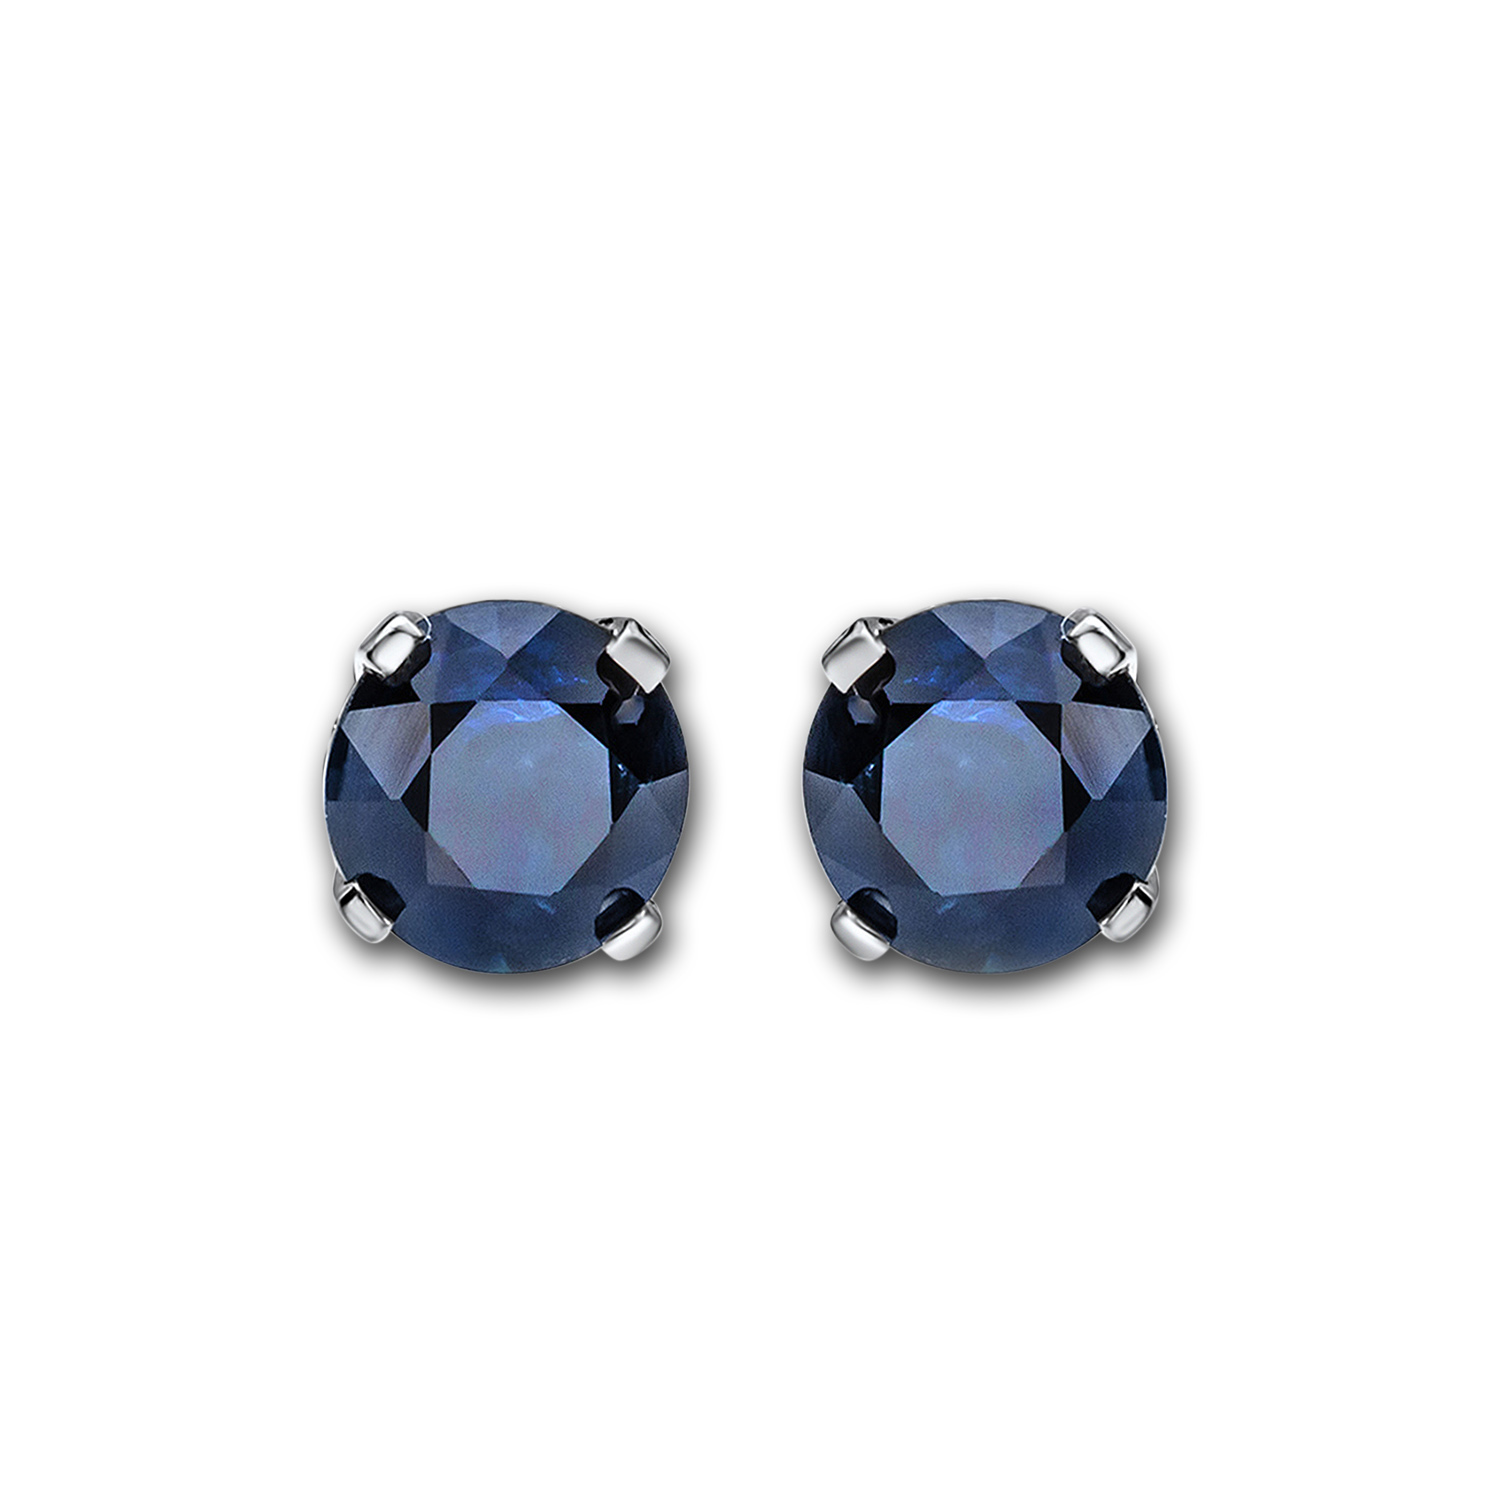 14k White Gold 4 mm Sapphire Stud Earrings